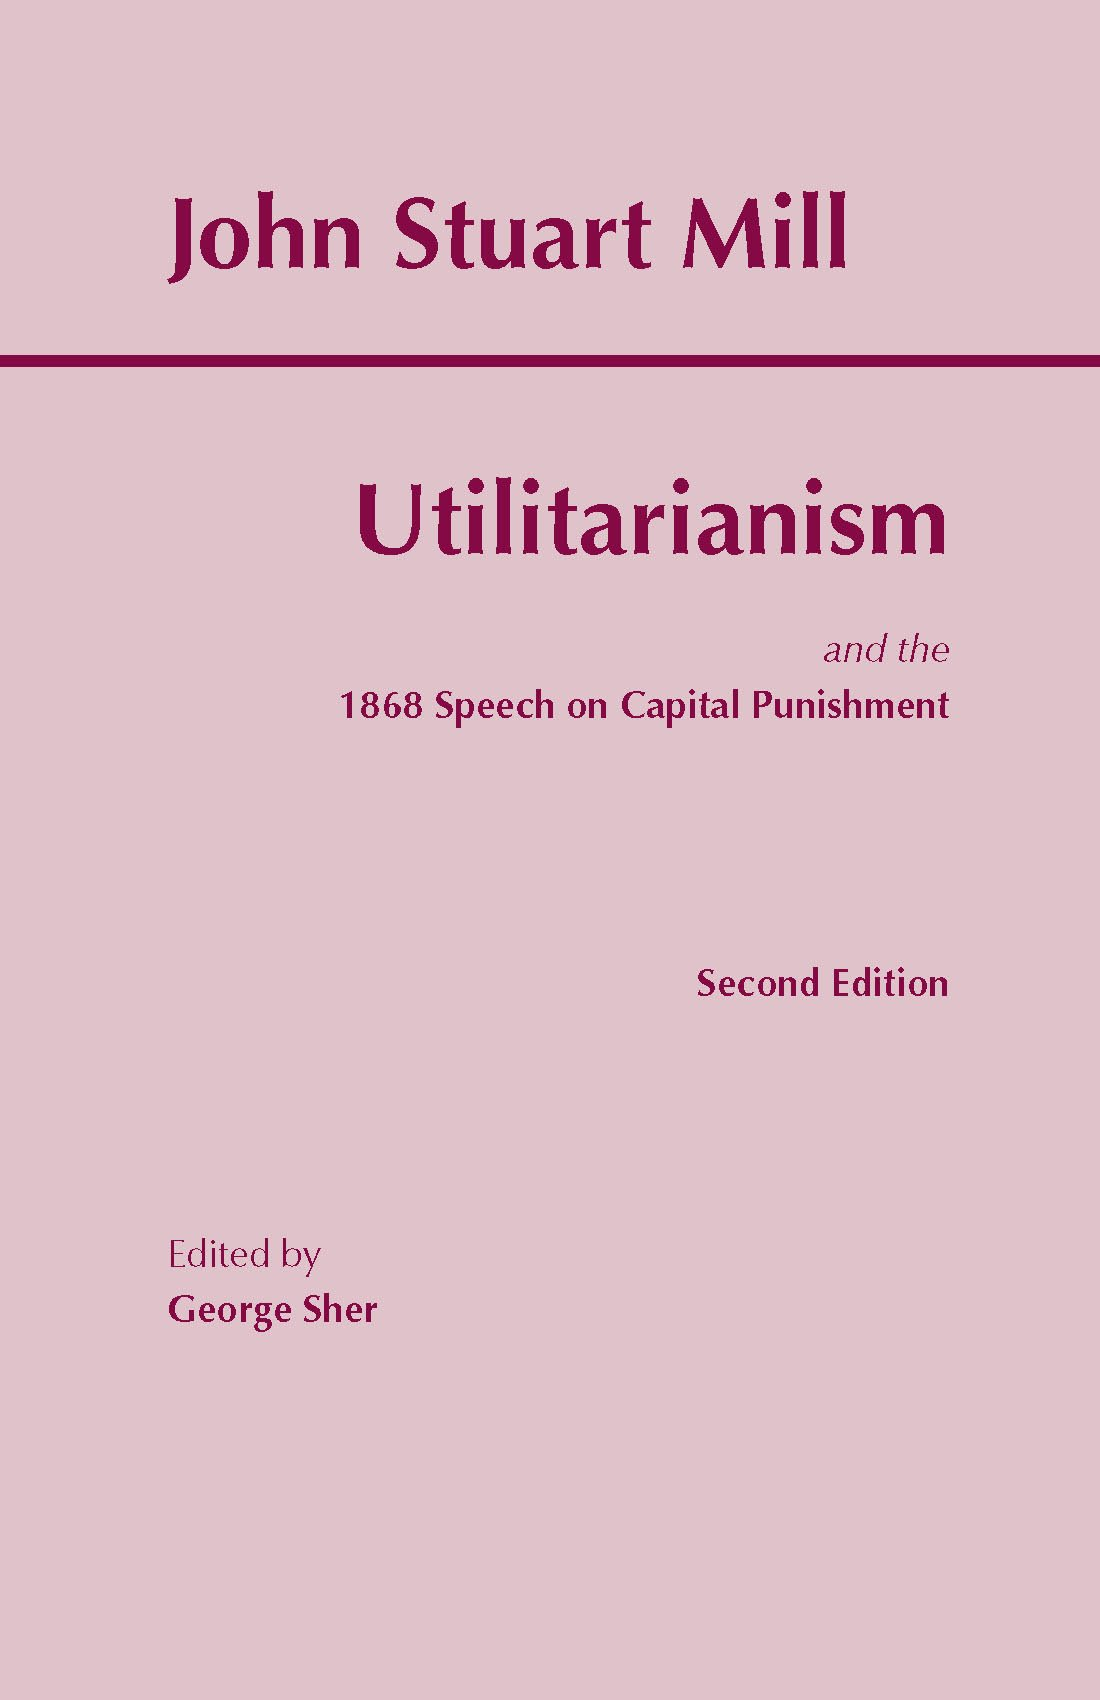 Utilitarianism Essay Explain The Main Differences Between Act And